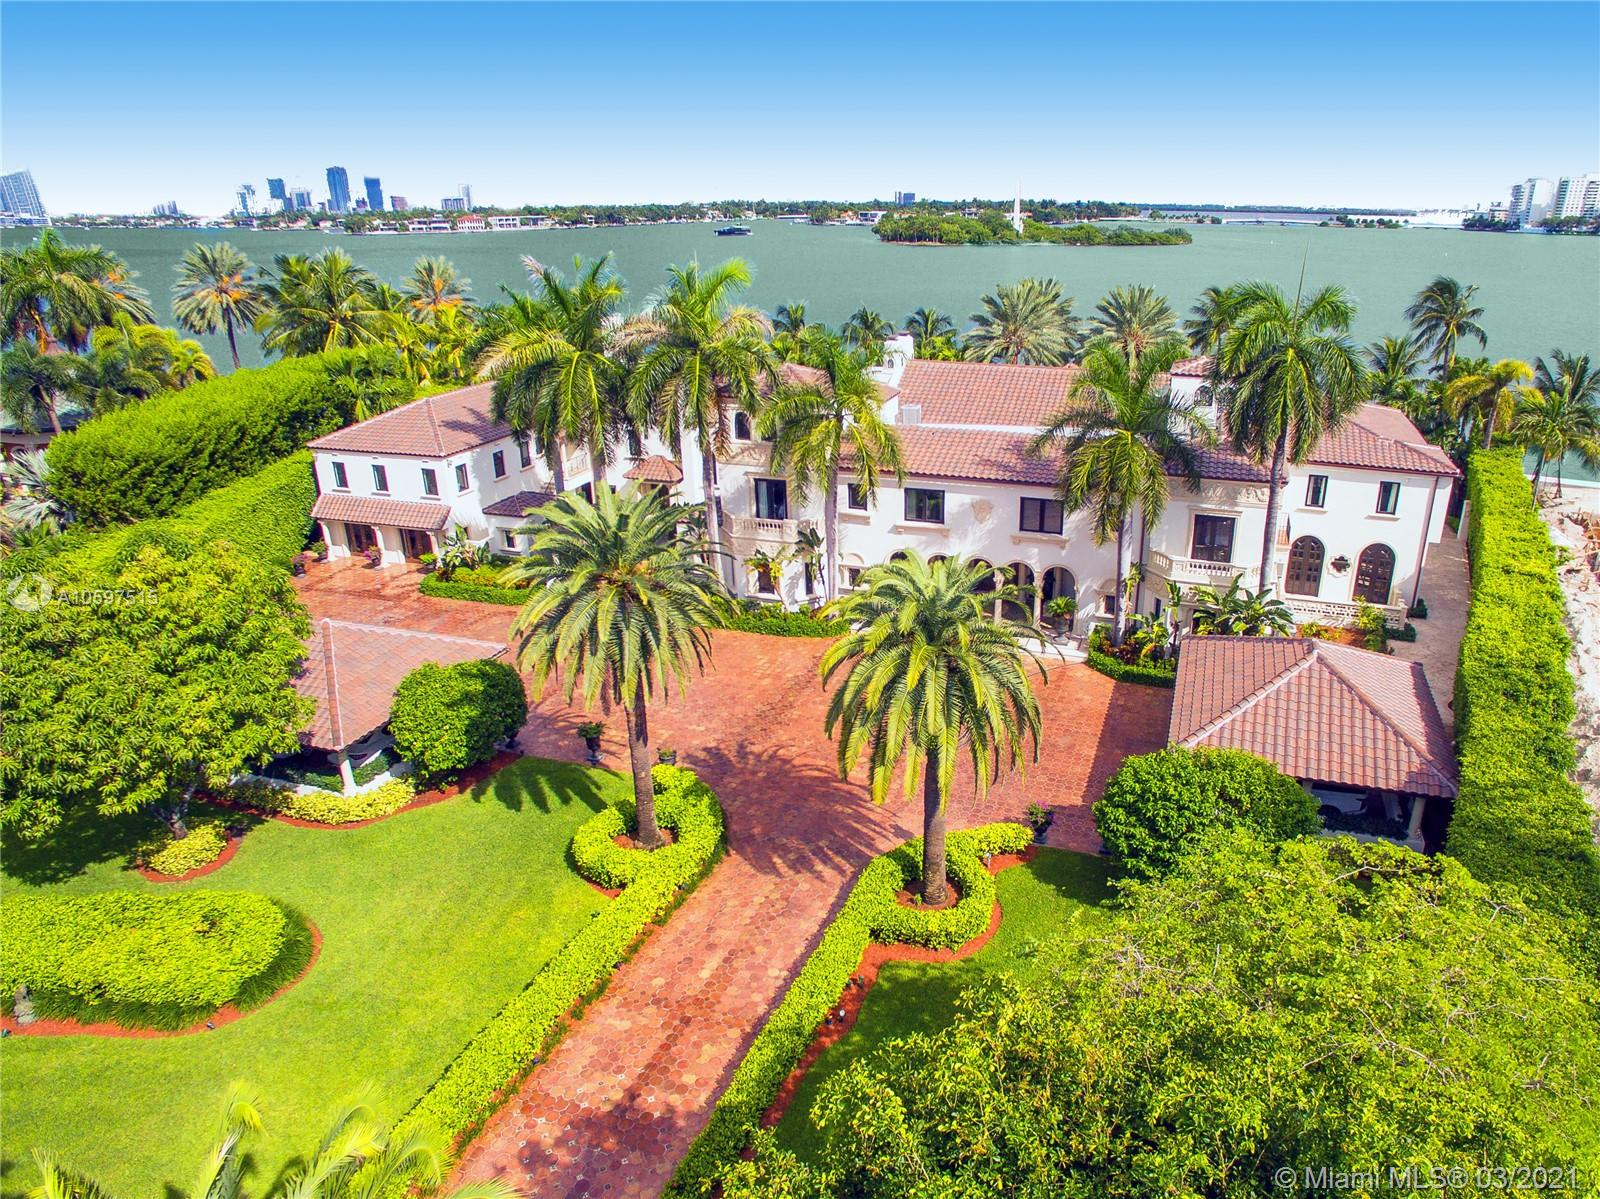 Prestigious Palm Beach Elegance Meets The Hip South Beach Lifestyle In This Extraordinarily Renovated Waterfront Villa With A Modern Touch! The Most Prime Location On Star Island, This Legendary Venetian Villa Built By Carl Fisher In 1924 On A Pie-Shaped Lot Just Under 1.5 Acres & W Breathtaking Open Bay Views. 255 Ft Of Waterfront Ideal For Yachts, Originally Developed As The Yacht Club On The 1St Man-Made Miami Beach Island. Gut Renovated In 2017- Restoring Architectural Details In Formal Entertaining Areas While Blending Fresh & Relaxed Style In Casual Spaces & Ultra Modern Kitchen. Lushly Landscaped Garden & Pool Designed For Intimate & Glamorous Formal Entertaining. 10 Beds + 10.5 Baths Walled & Gated W 20, 000 Sf Of Interior Living Space Perfect For Families To Enjoy Life At The Top!